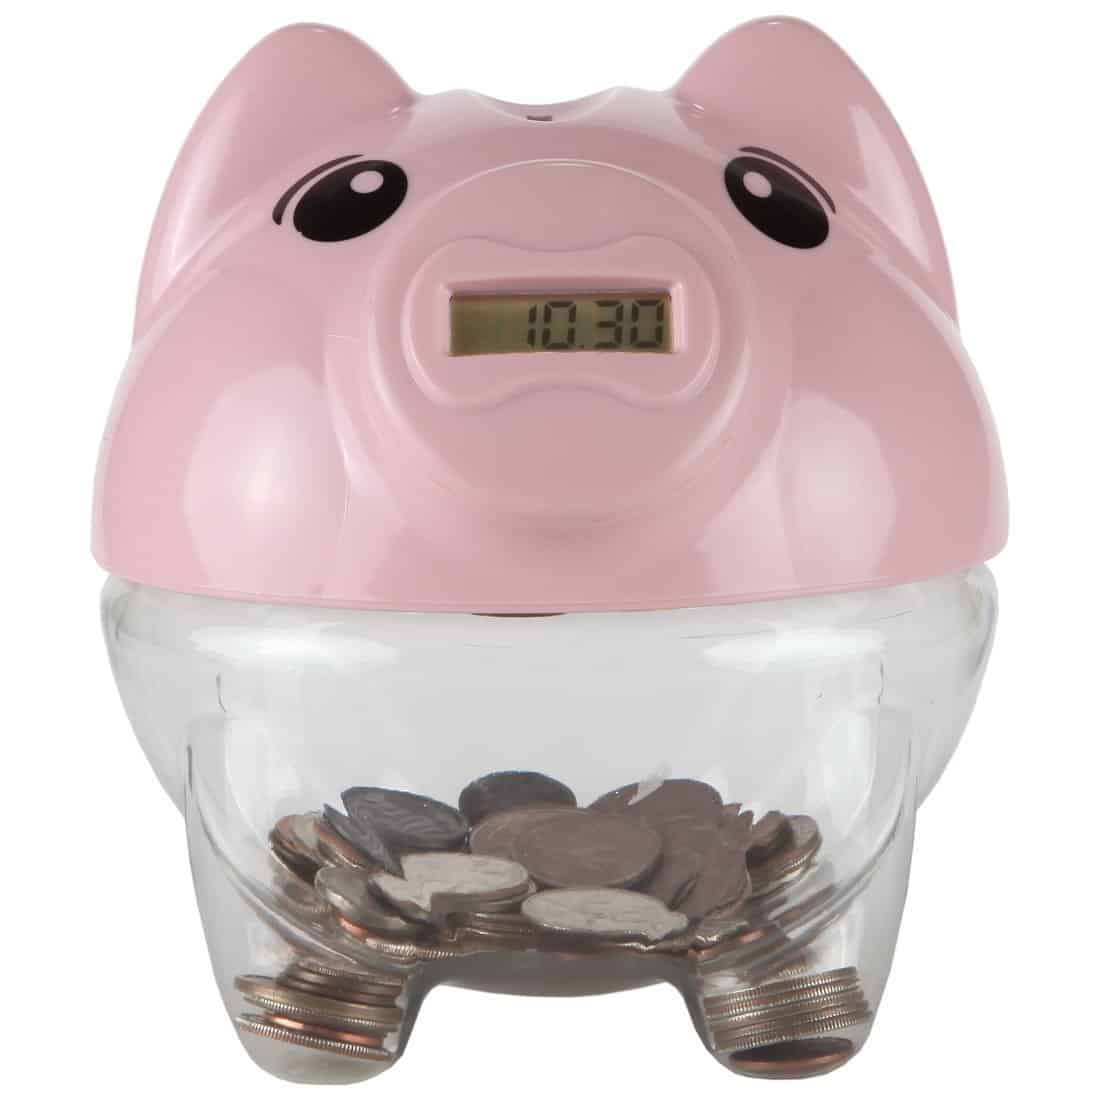 Lily's Home Kid's Money Counting Digital Coin Bank - Pink Piggy Bank